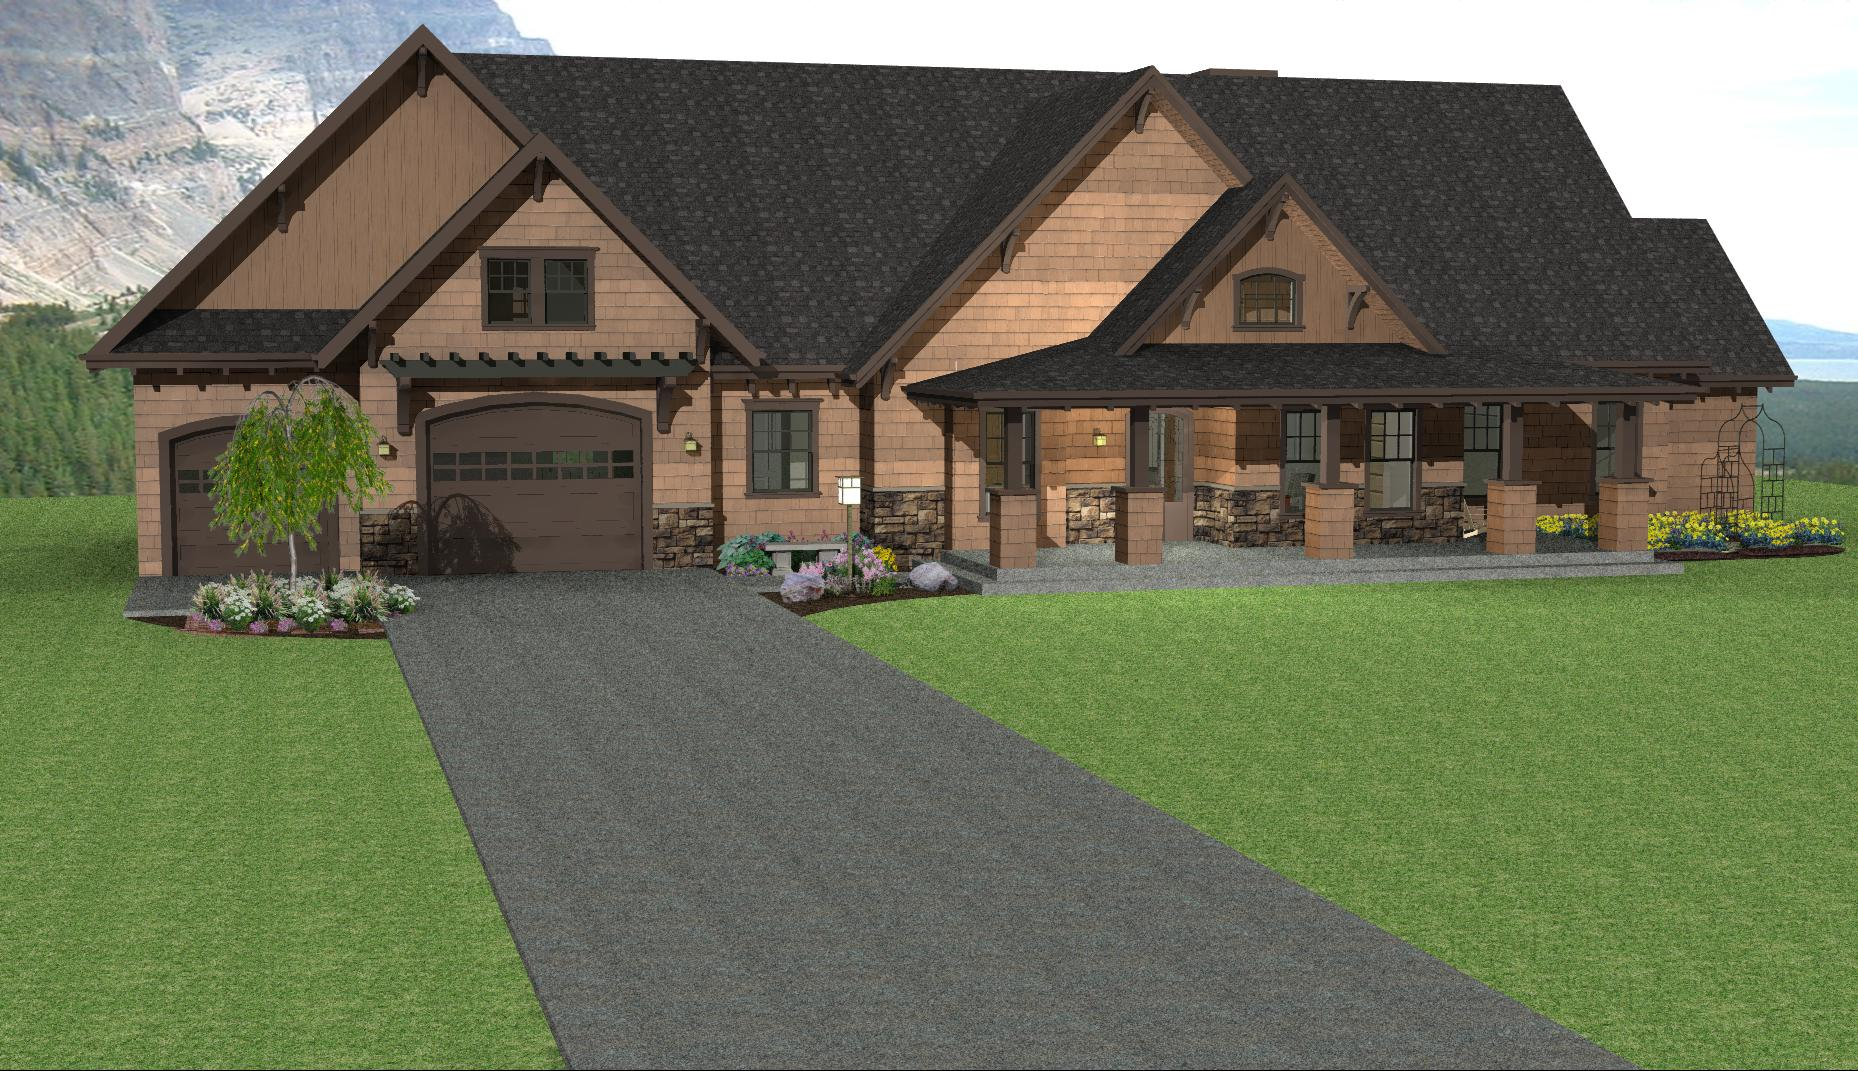 Ranch style home designs find house plans for Ranch style house design